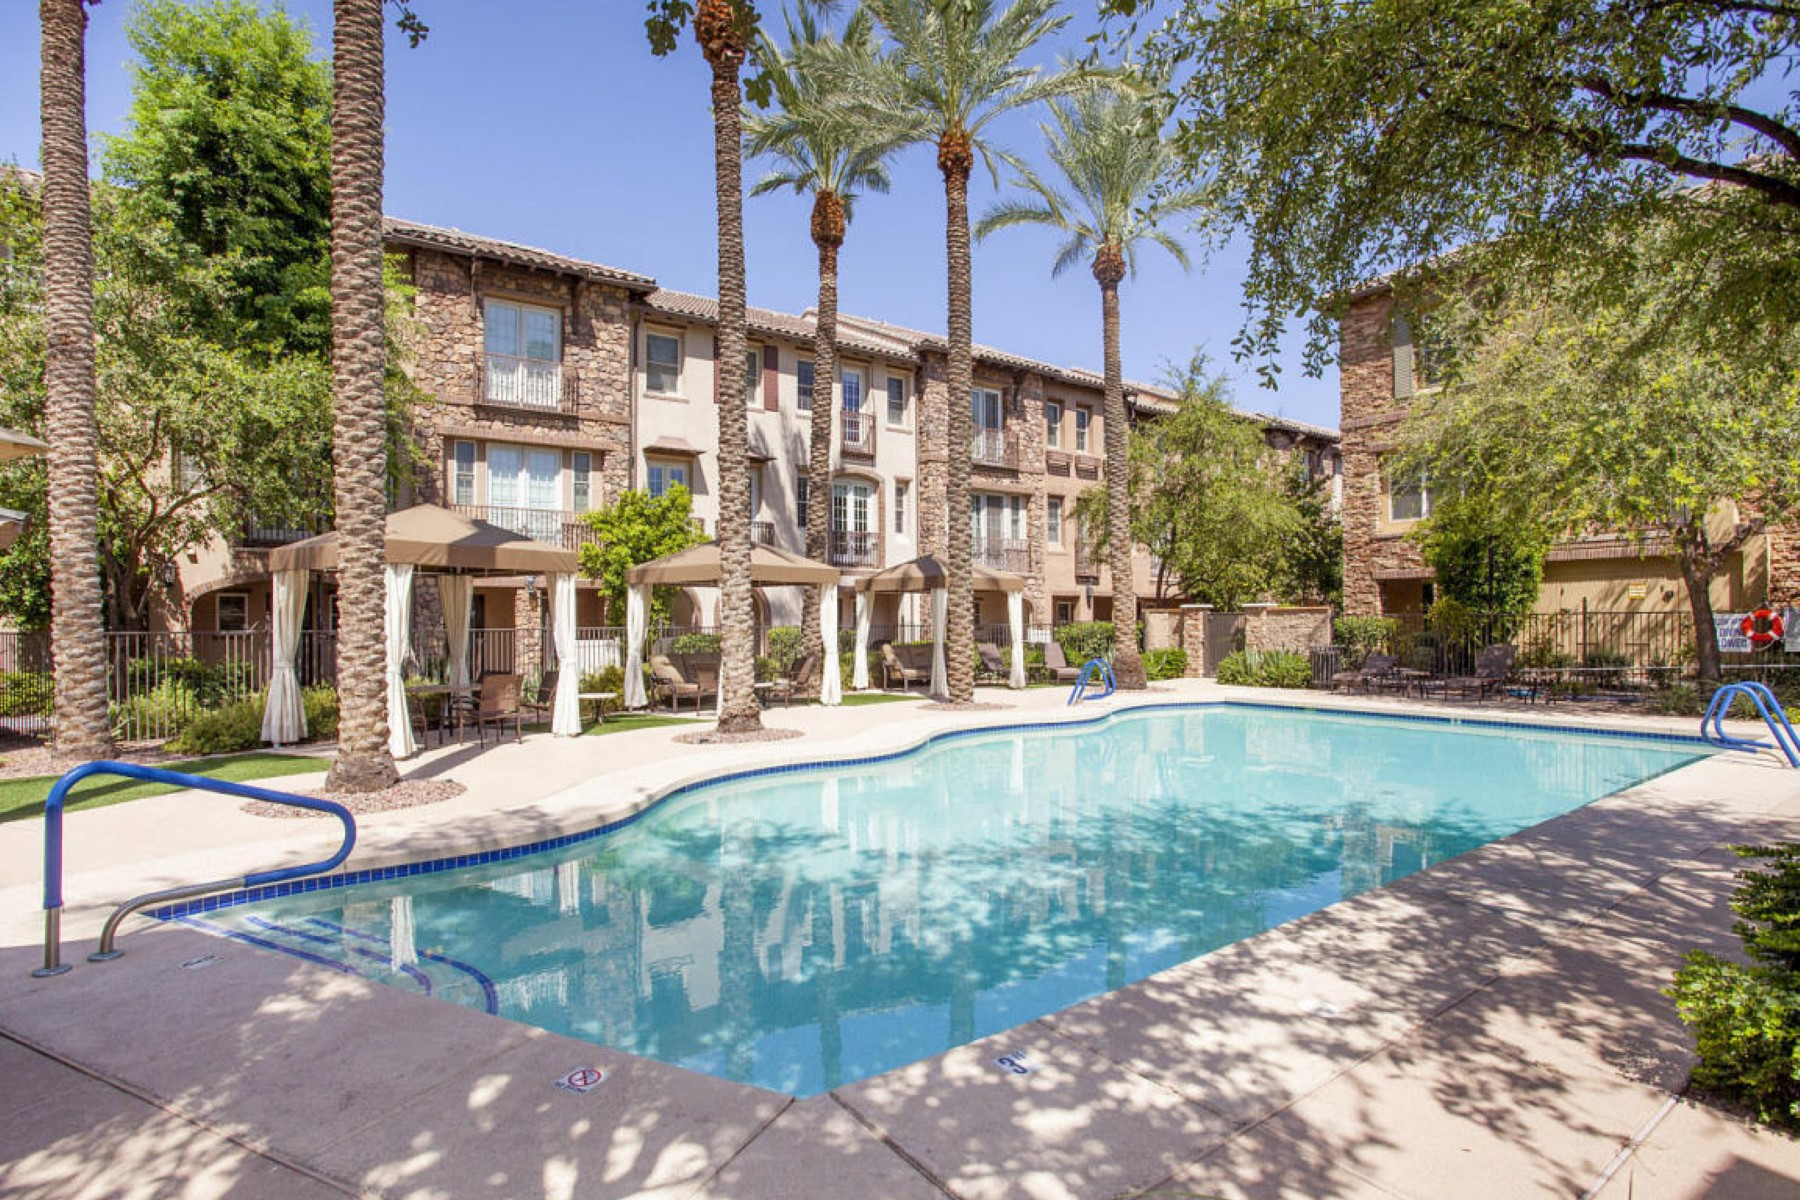 Townhouse for Sale at Quiet enclave of luxury located in the heart of the city 2470 E Roma Ave Phoenix, Arizona, 85016 United States